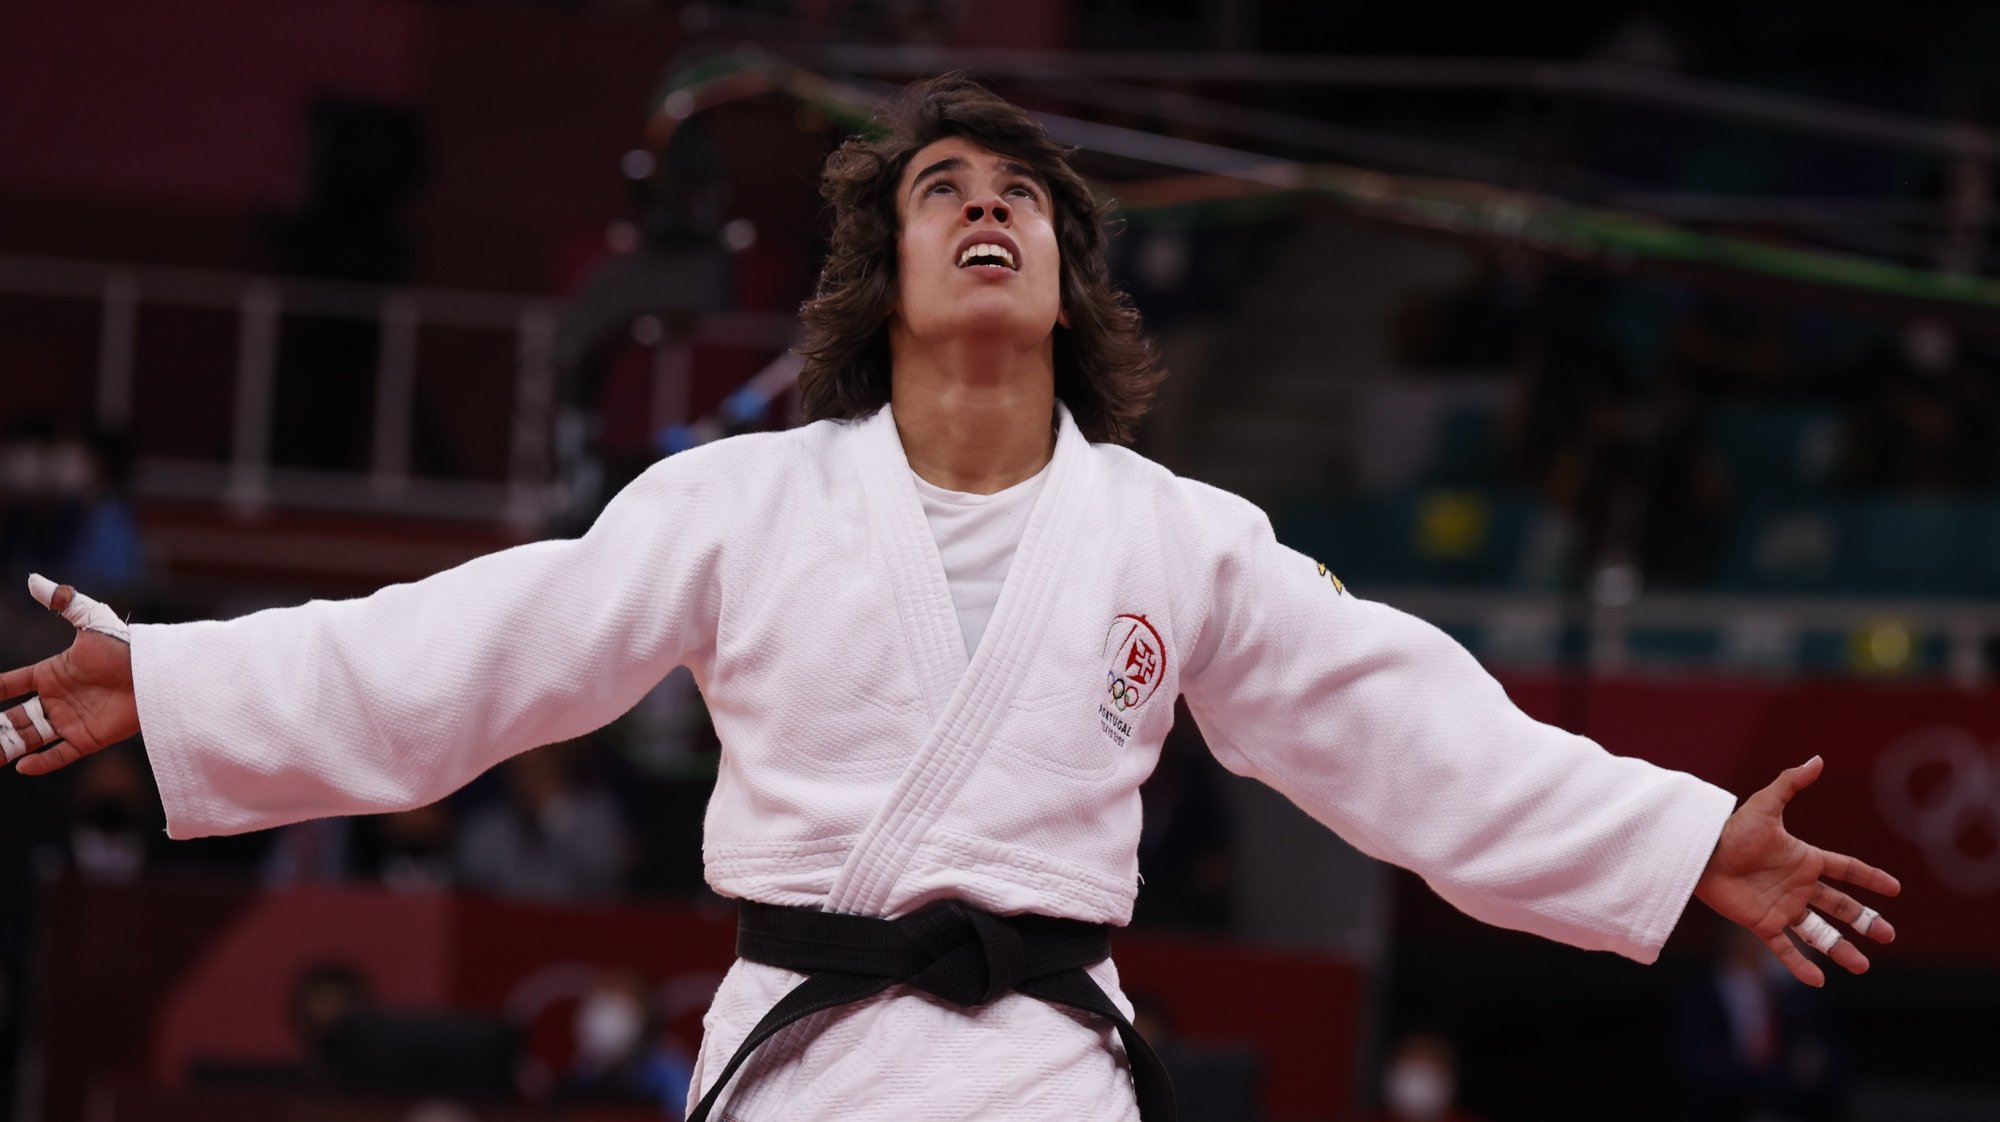 epa09361400 Catarina Costa of Portugal celebrates after defeating Paula Pareto of Argentina during their Repechage bout in the Women -48 kg at the Judo competitions of the Tokyo 2020 Olympic Games at the Nippon Budokan arena in Tokyo, Japan, 24 July 2021.  EPA/JEON HEON-KYUN